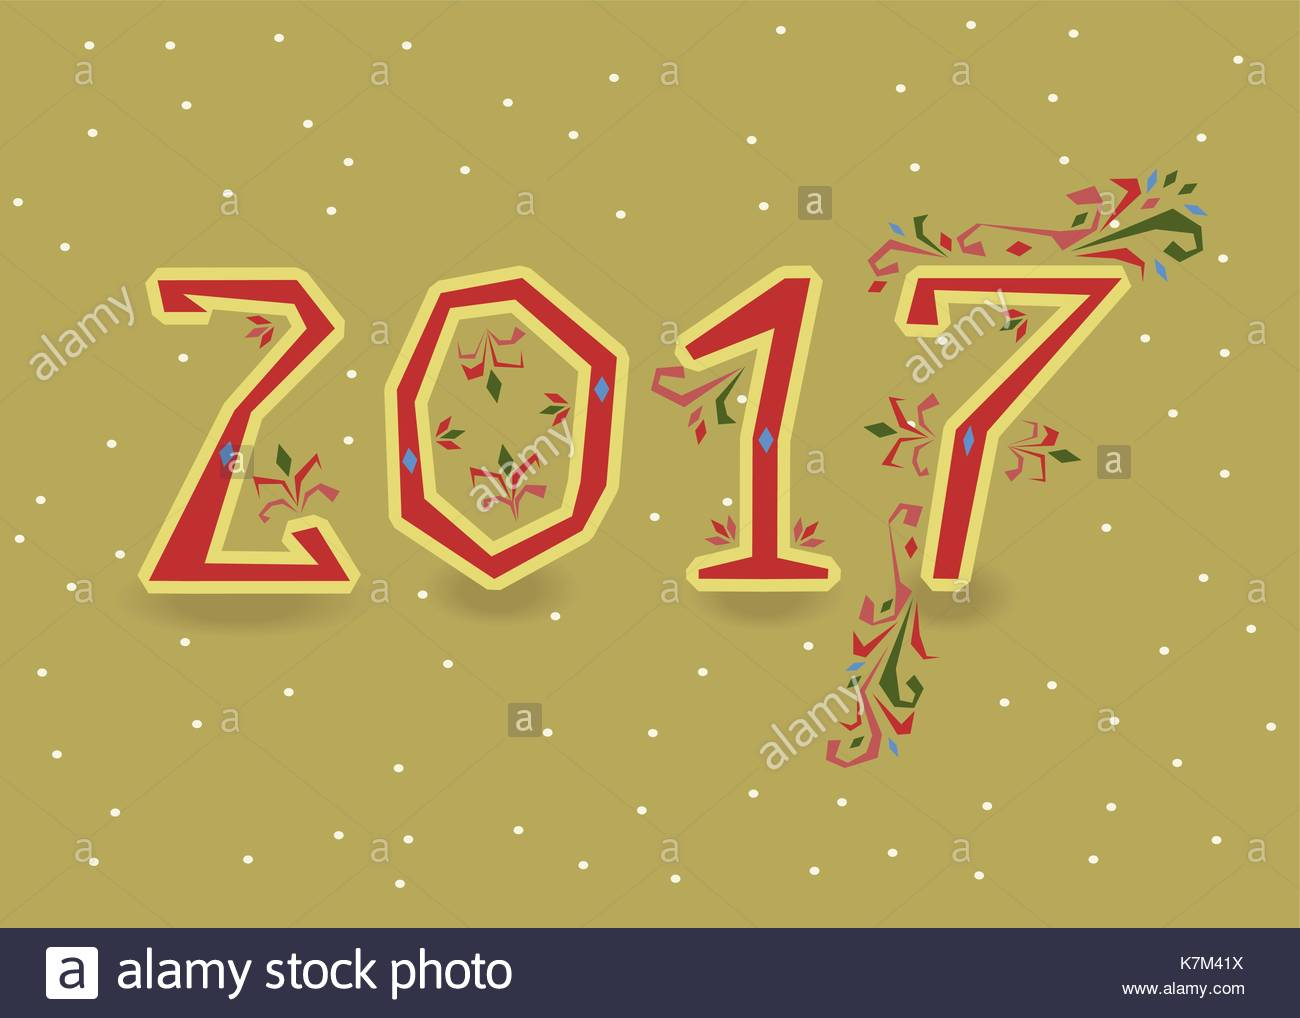 Happy New Year 2017 Calendar Template Red Hand Drawn Symbols With